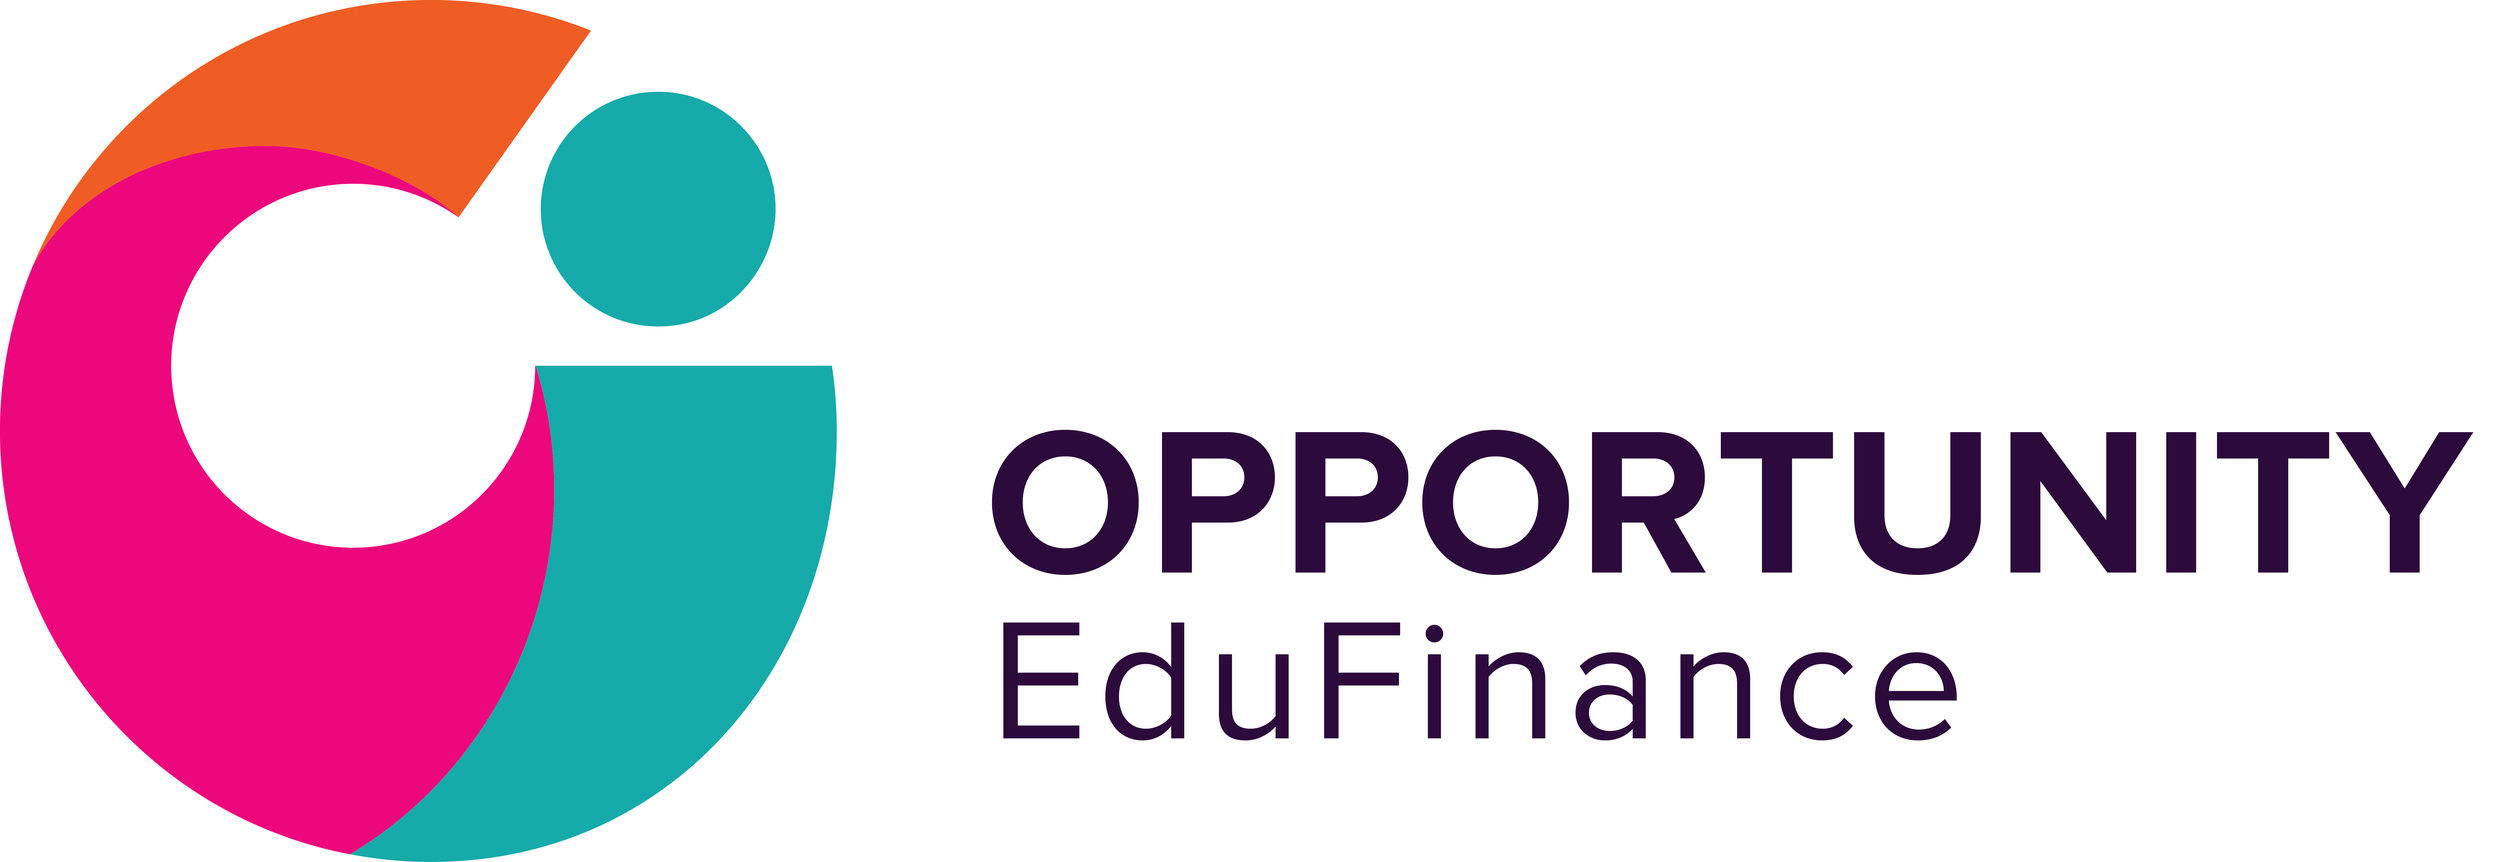 edufinance-horizontal-logo-whitebg_full-color (1).jpg